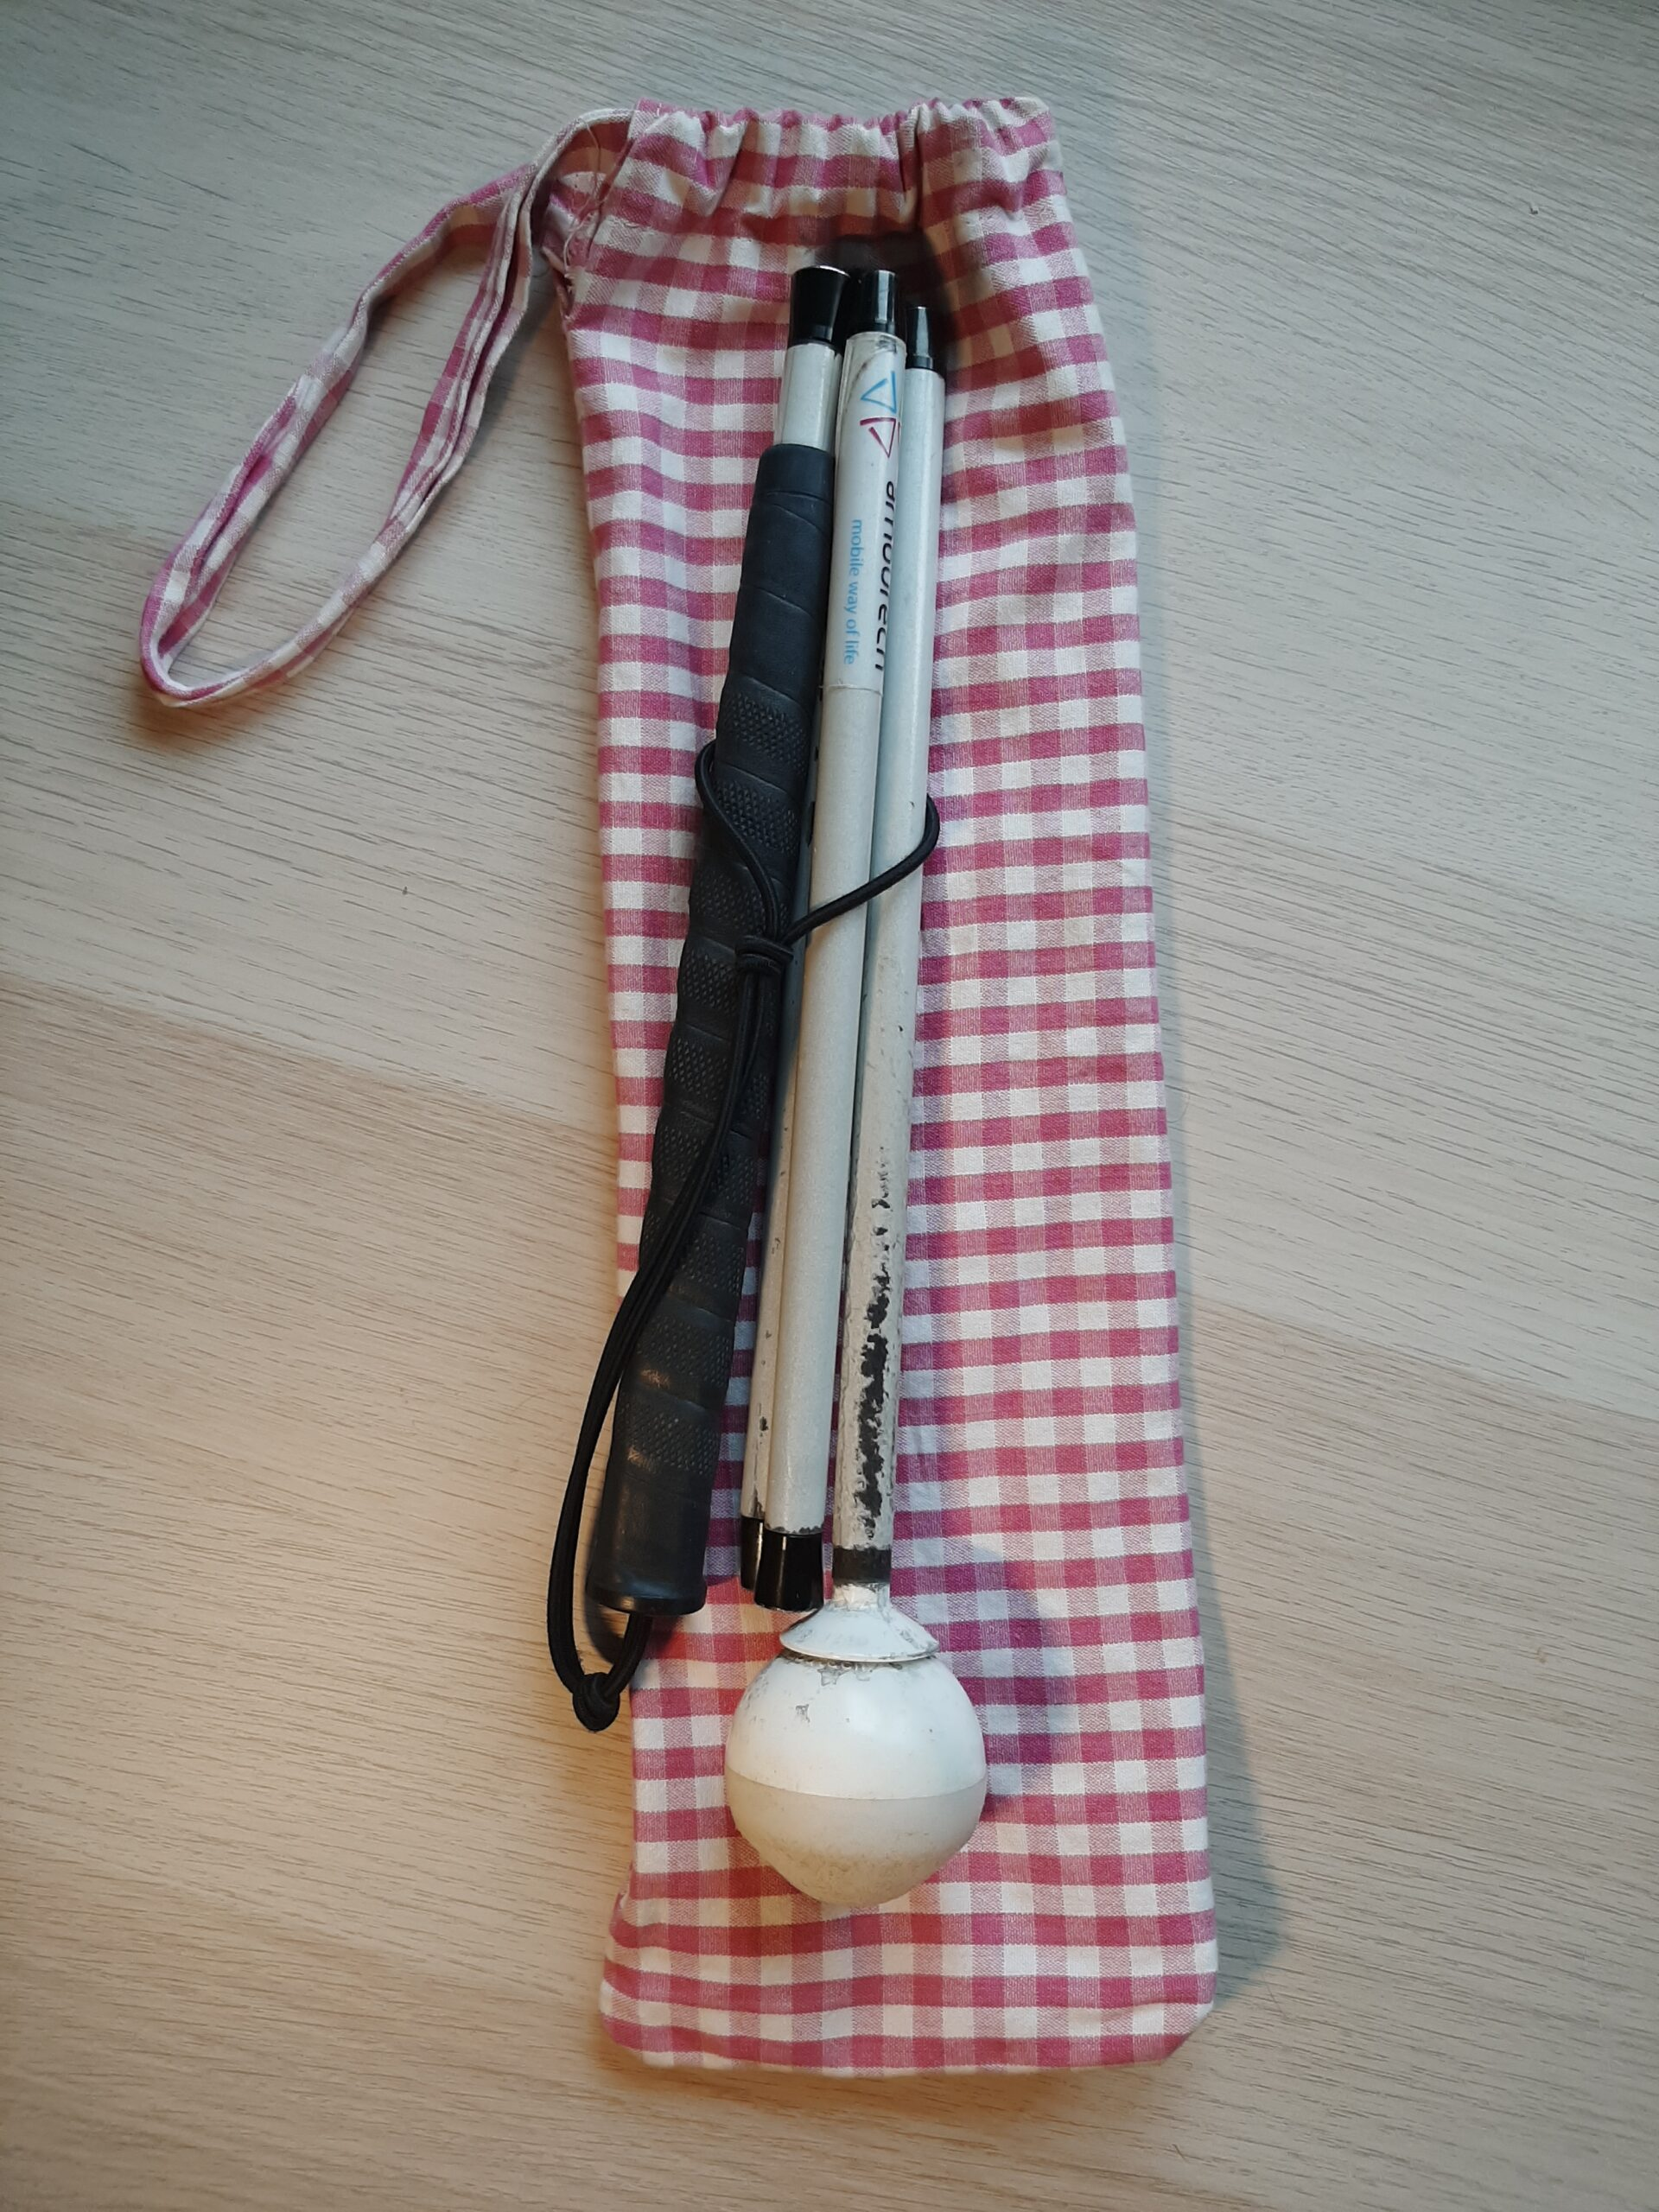 long mobility cane with pouch made from red gingham fabric